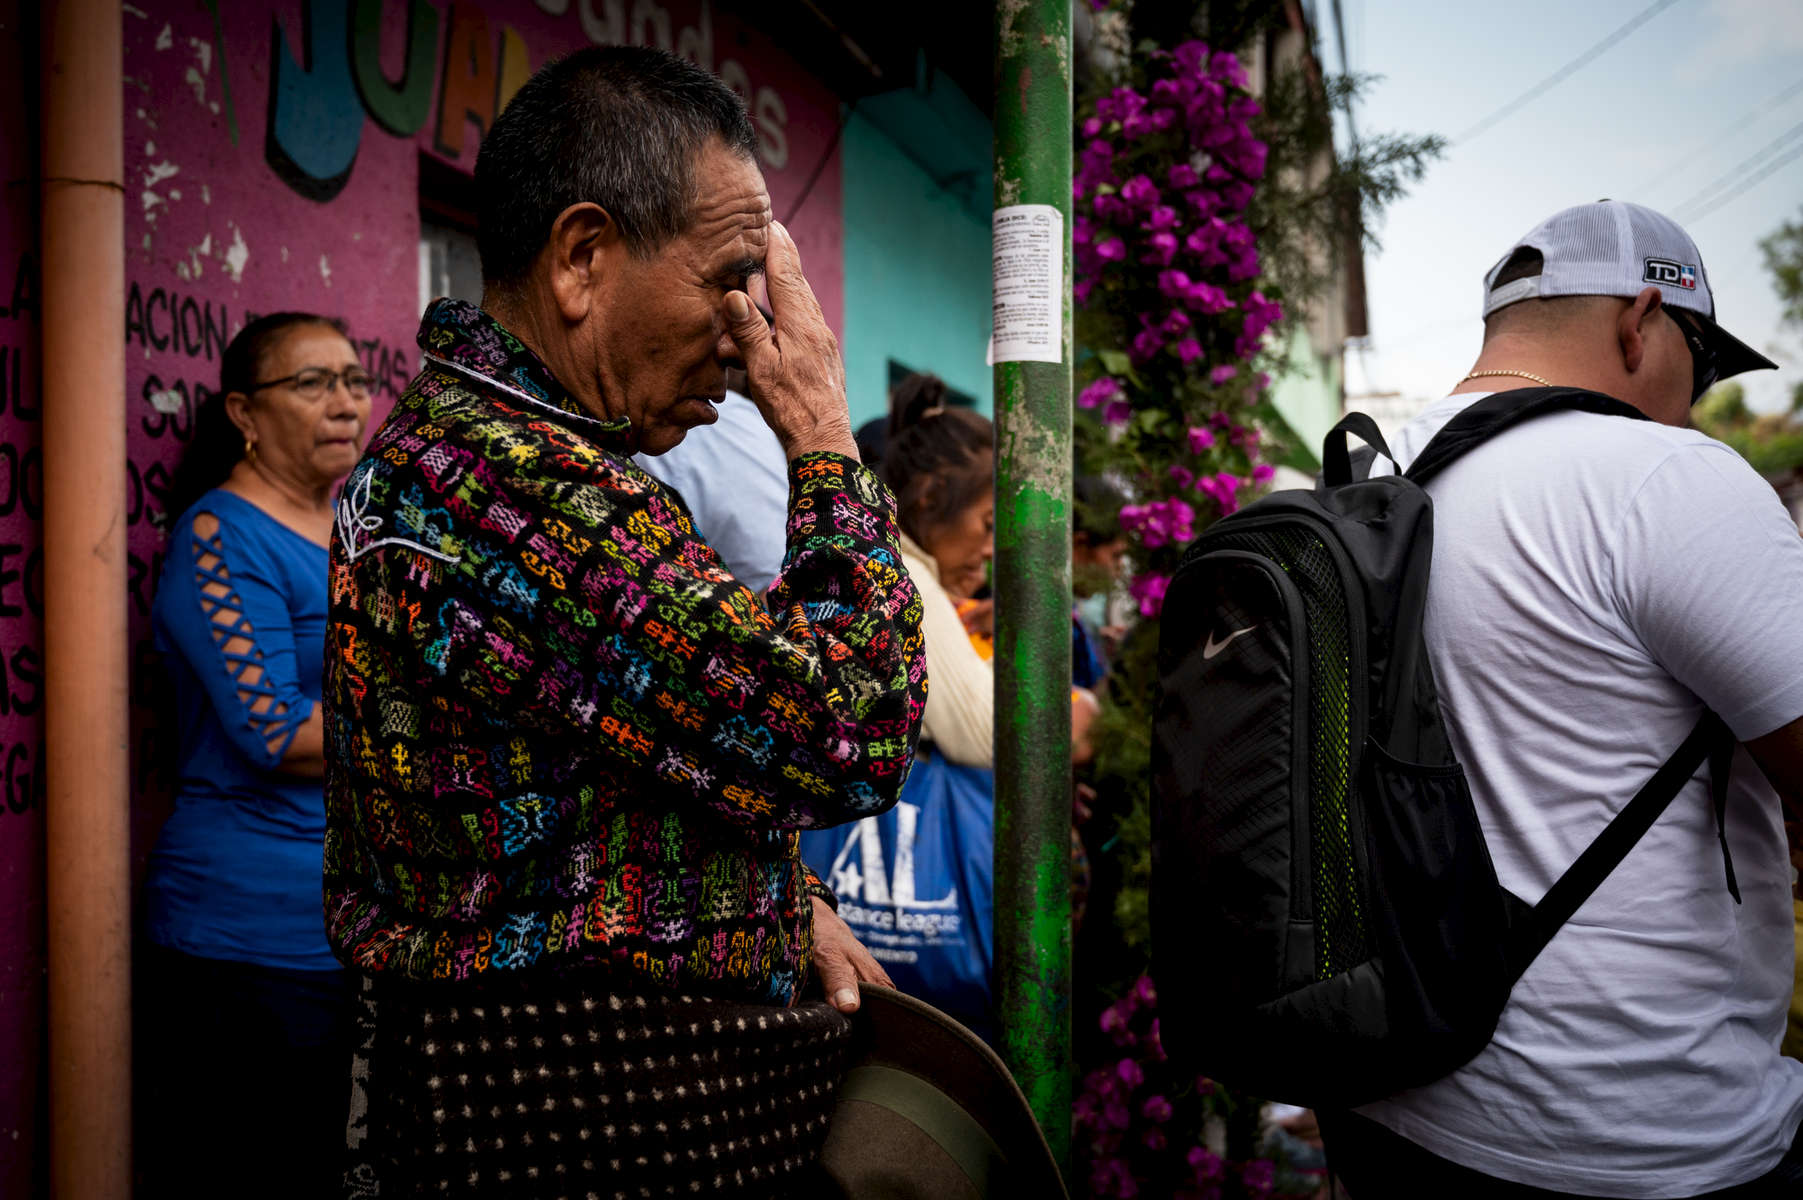 A man, prays during the procession.